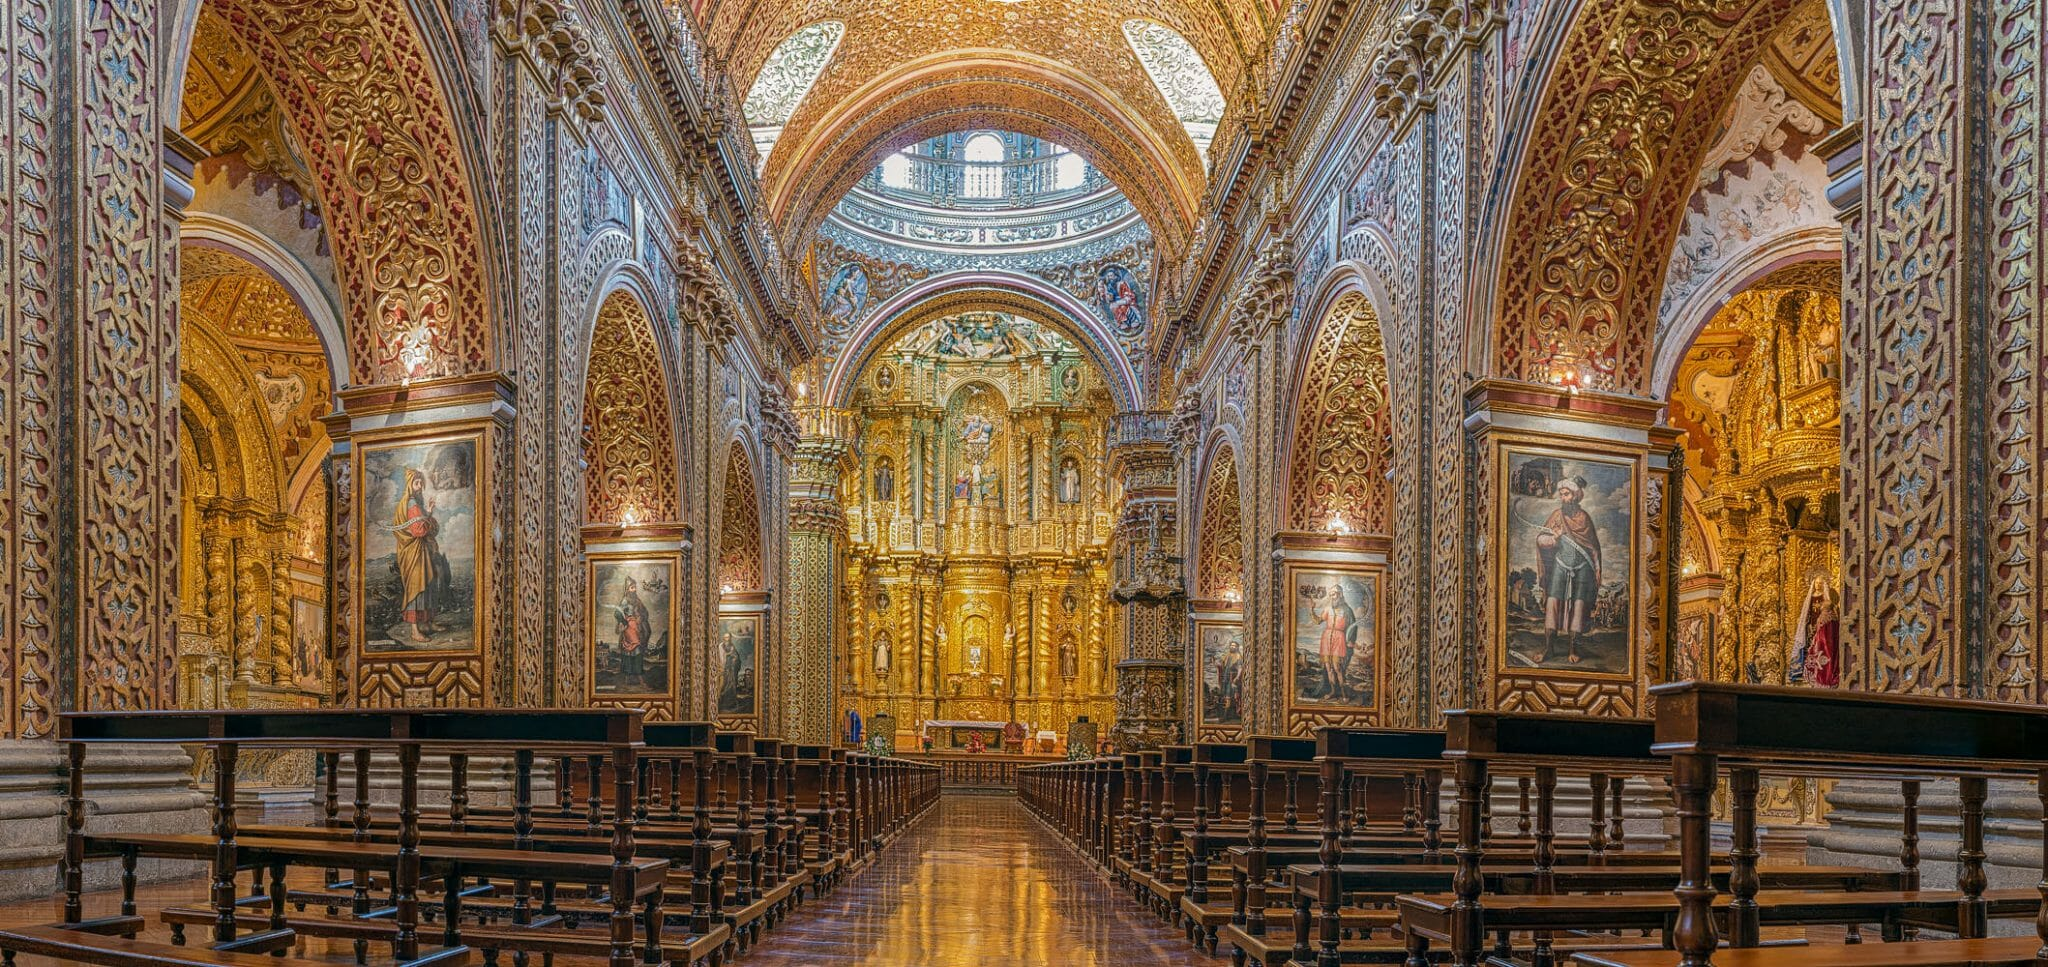 Panoramic view of the central nave La Compania Jesuit church in Quito